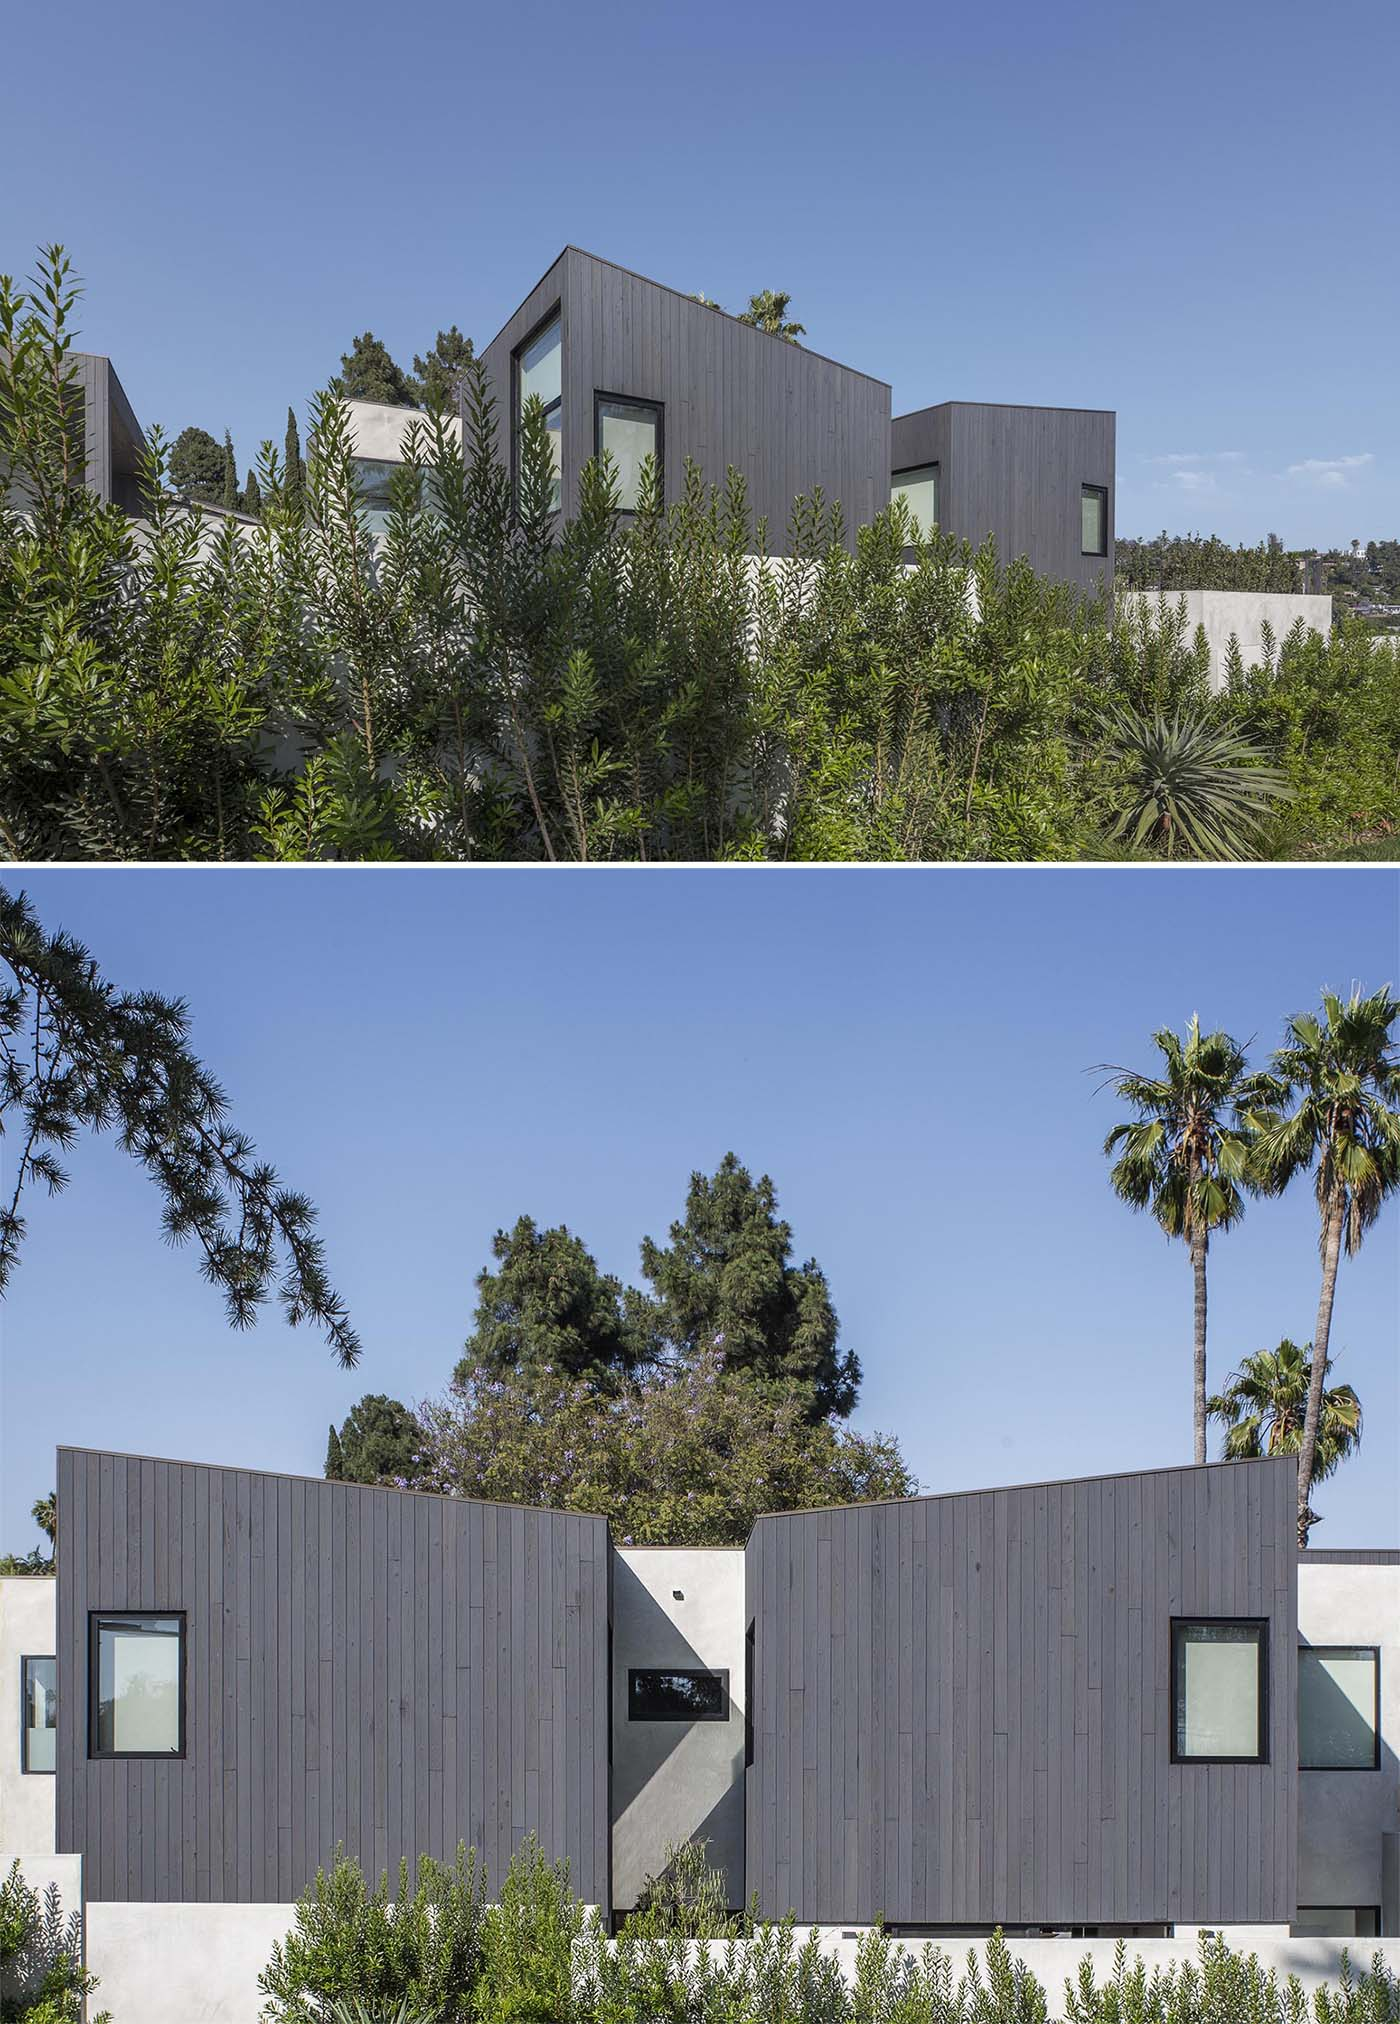 Situated on a highly exposed corner lot, the exterior of this modern home features Shou Sugi Ban charred cypress wood and a smooth exterior plaster.